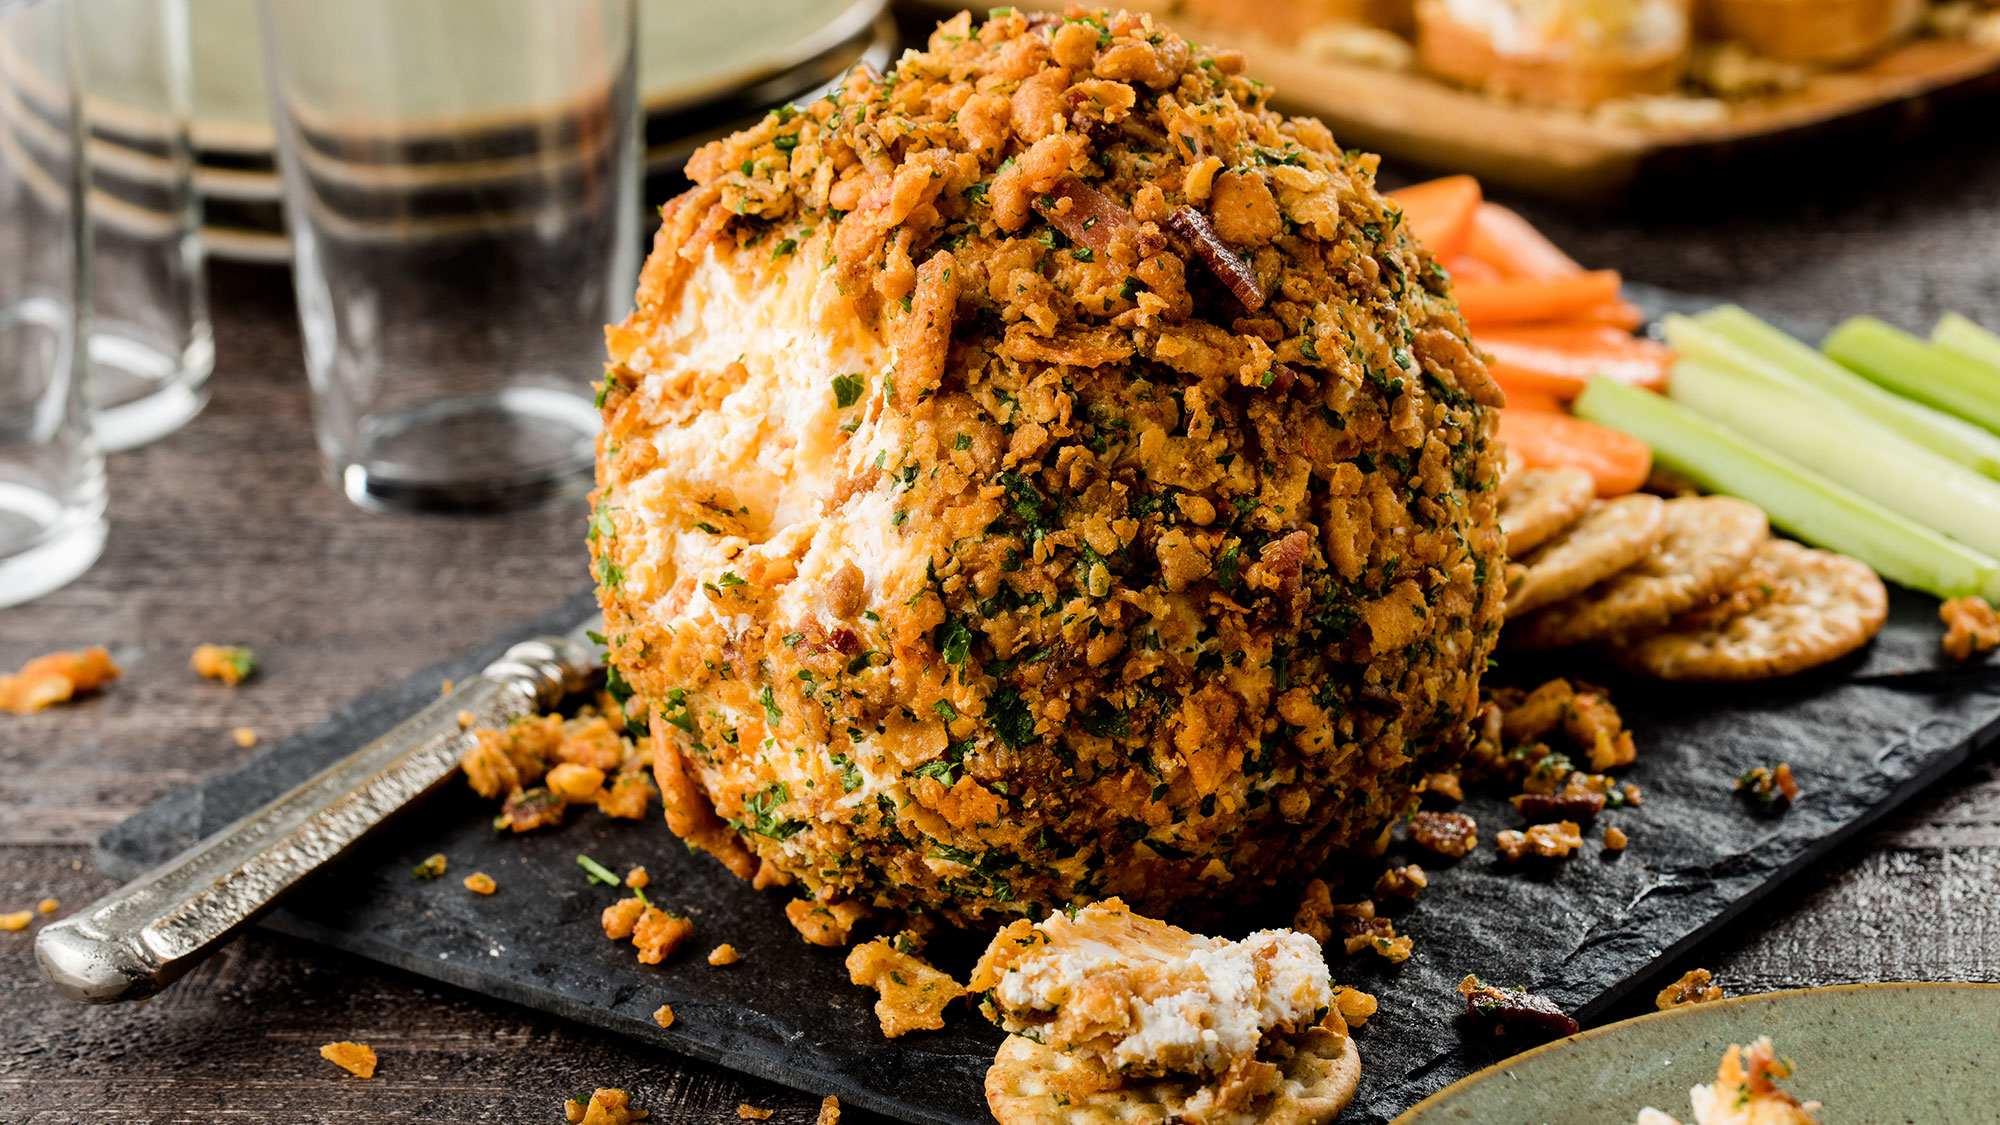 Crispy Bacon Cheddar Cheese Ball